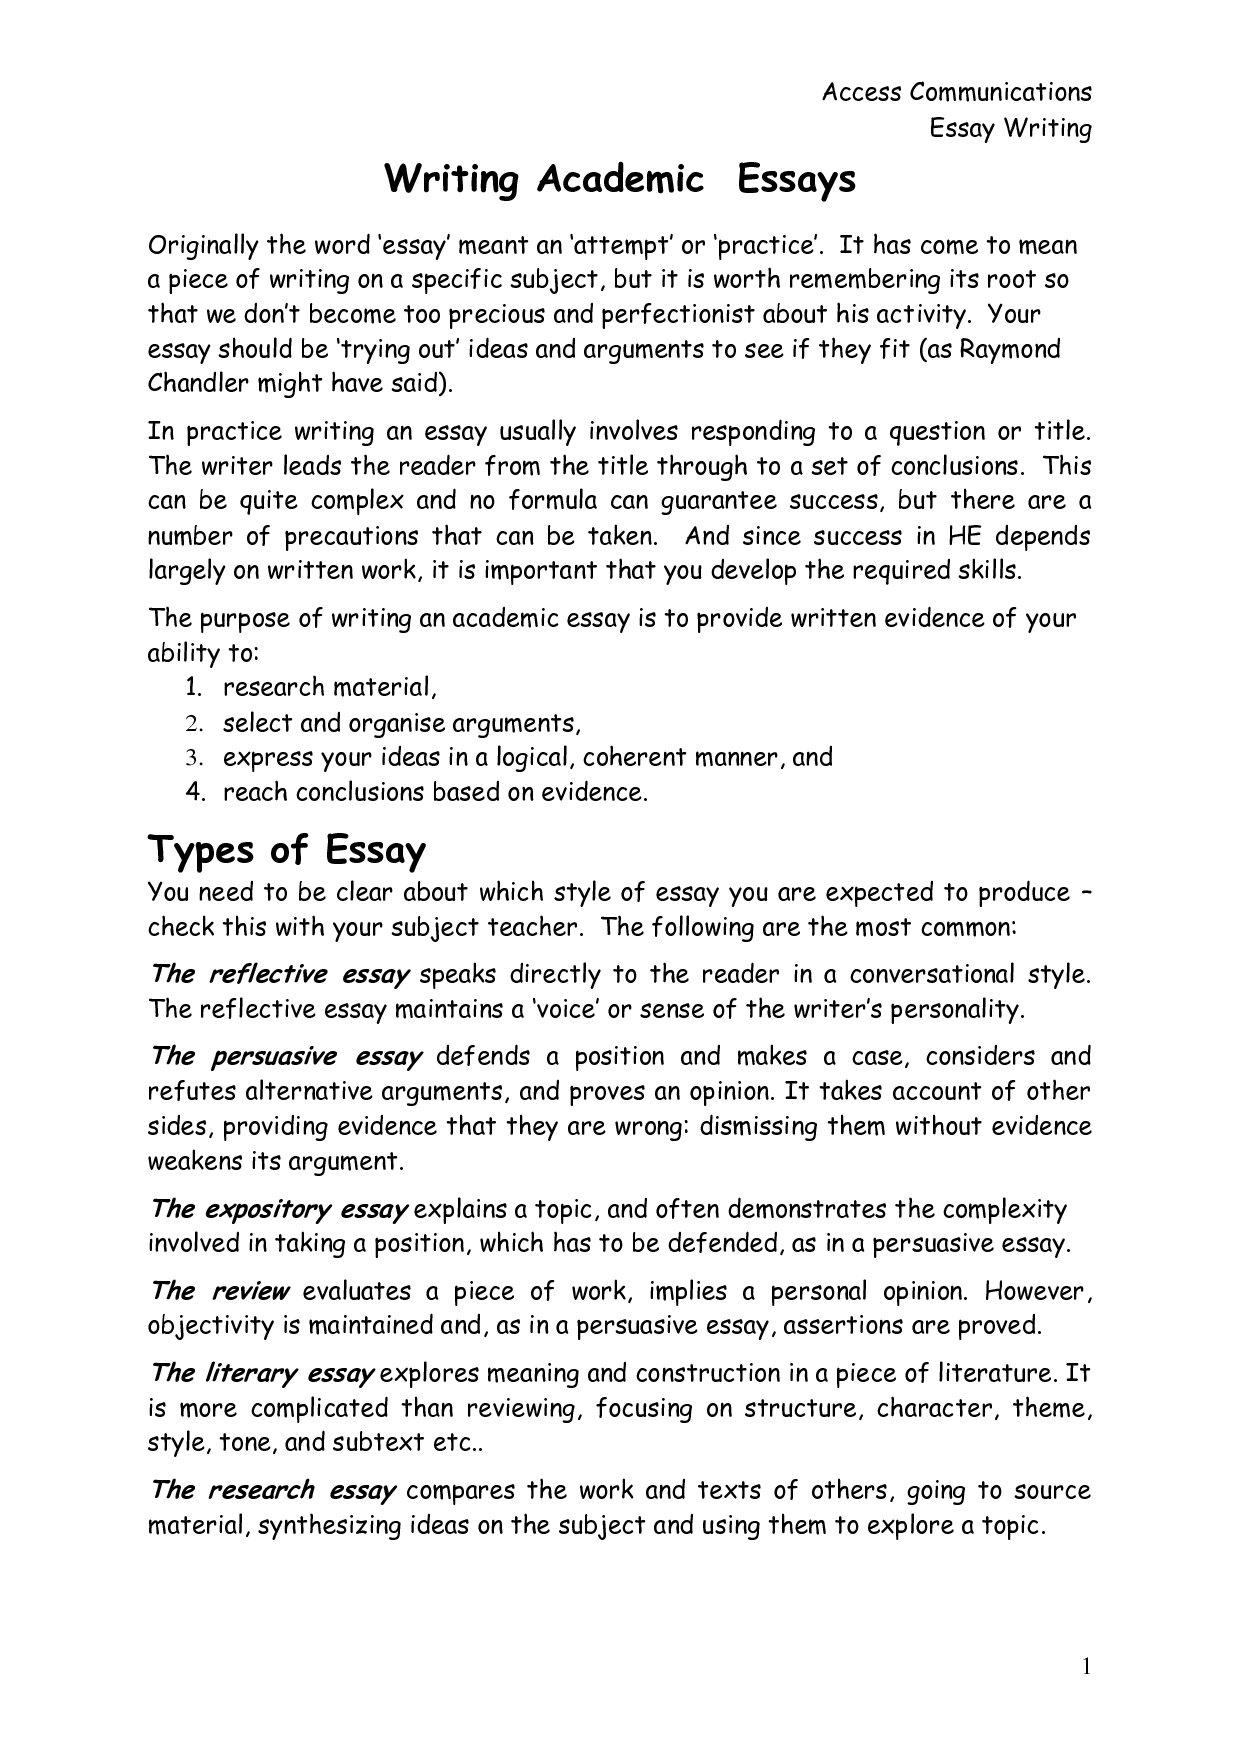 017 Essay Example How To Start Reflective Surprising A Introduction Do You An Write For Full